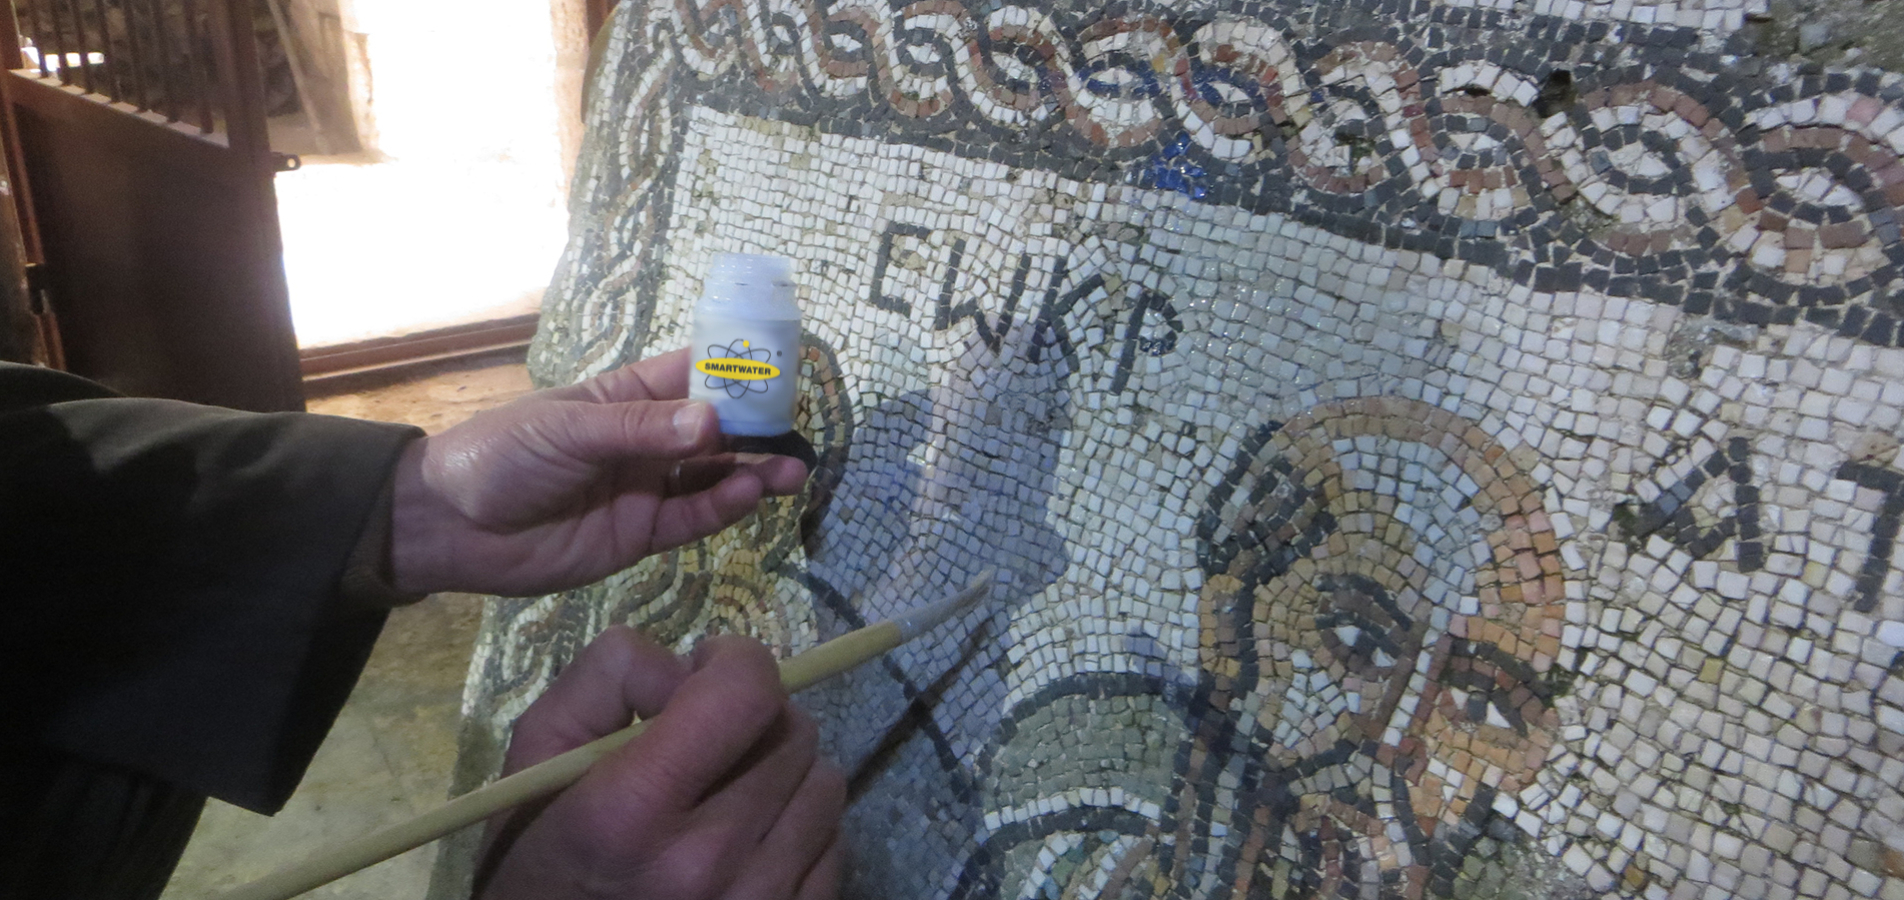 A New Solution to Protection Against Illicit Antiquities Looting and Trafficking